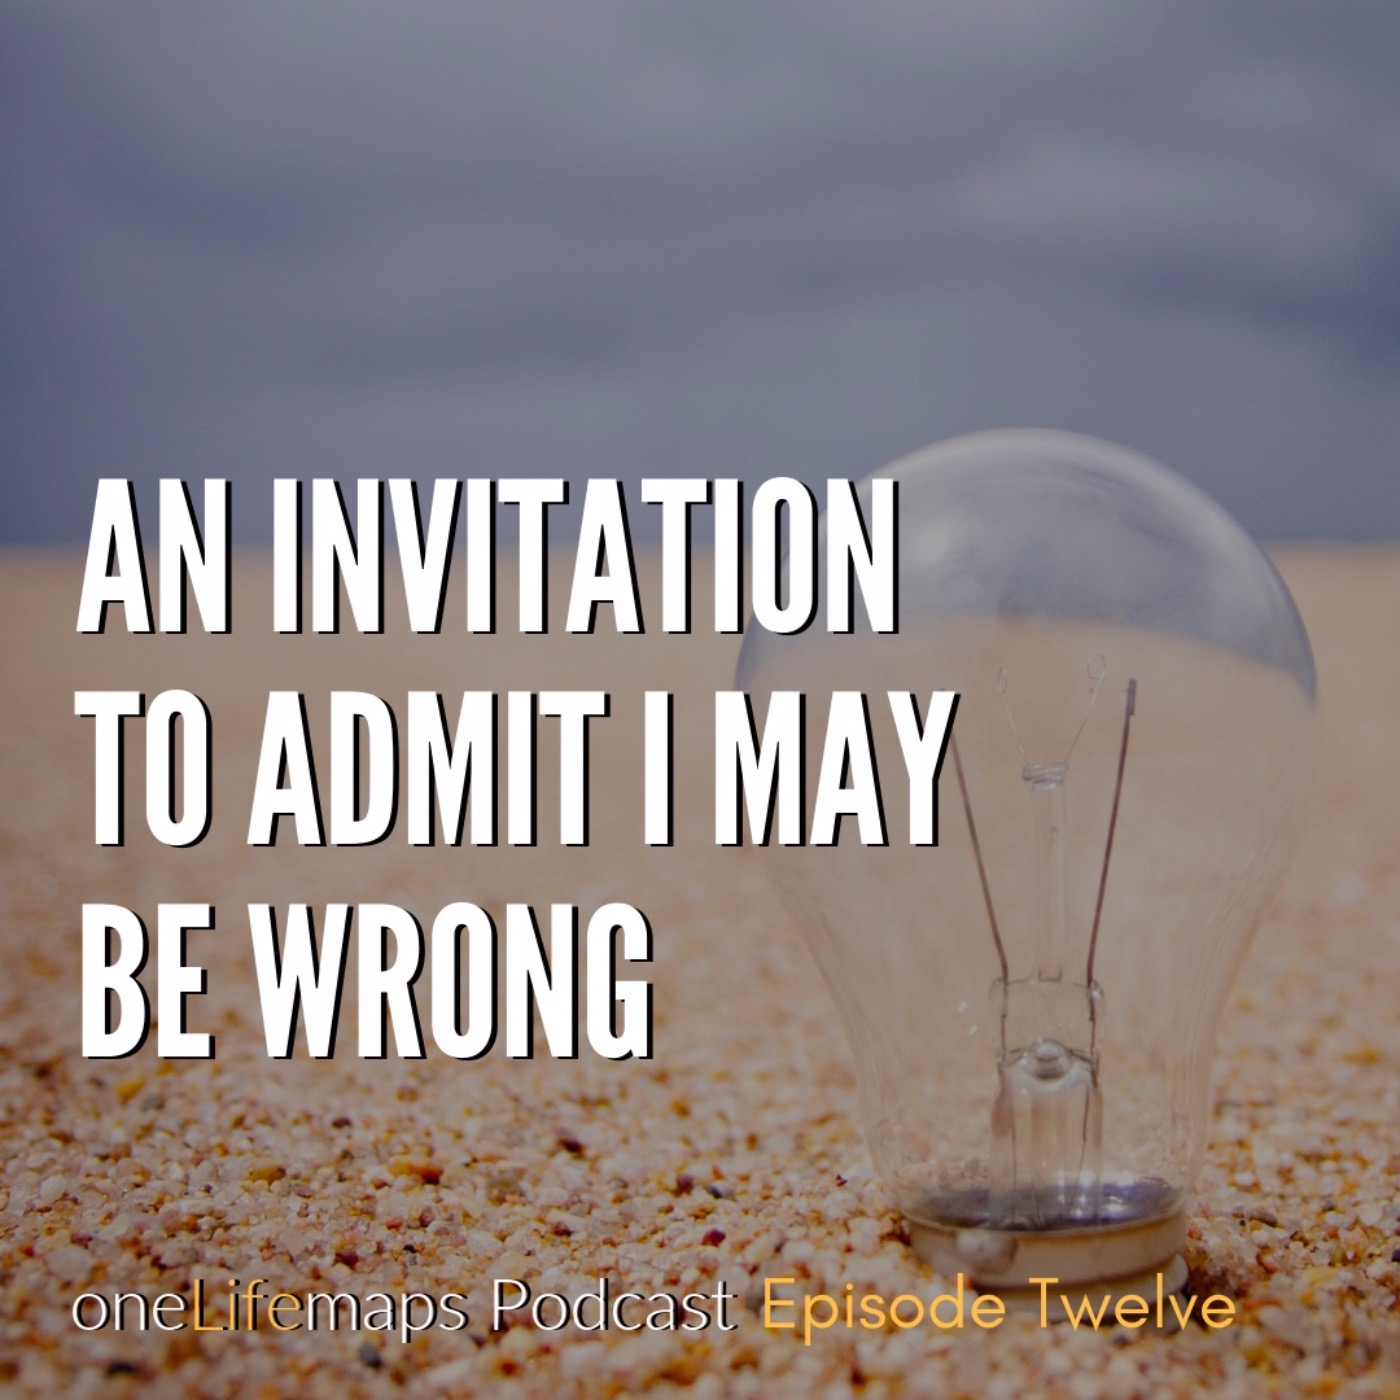 An Invitation to Admit I May Be Wrong